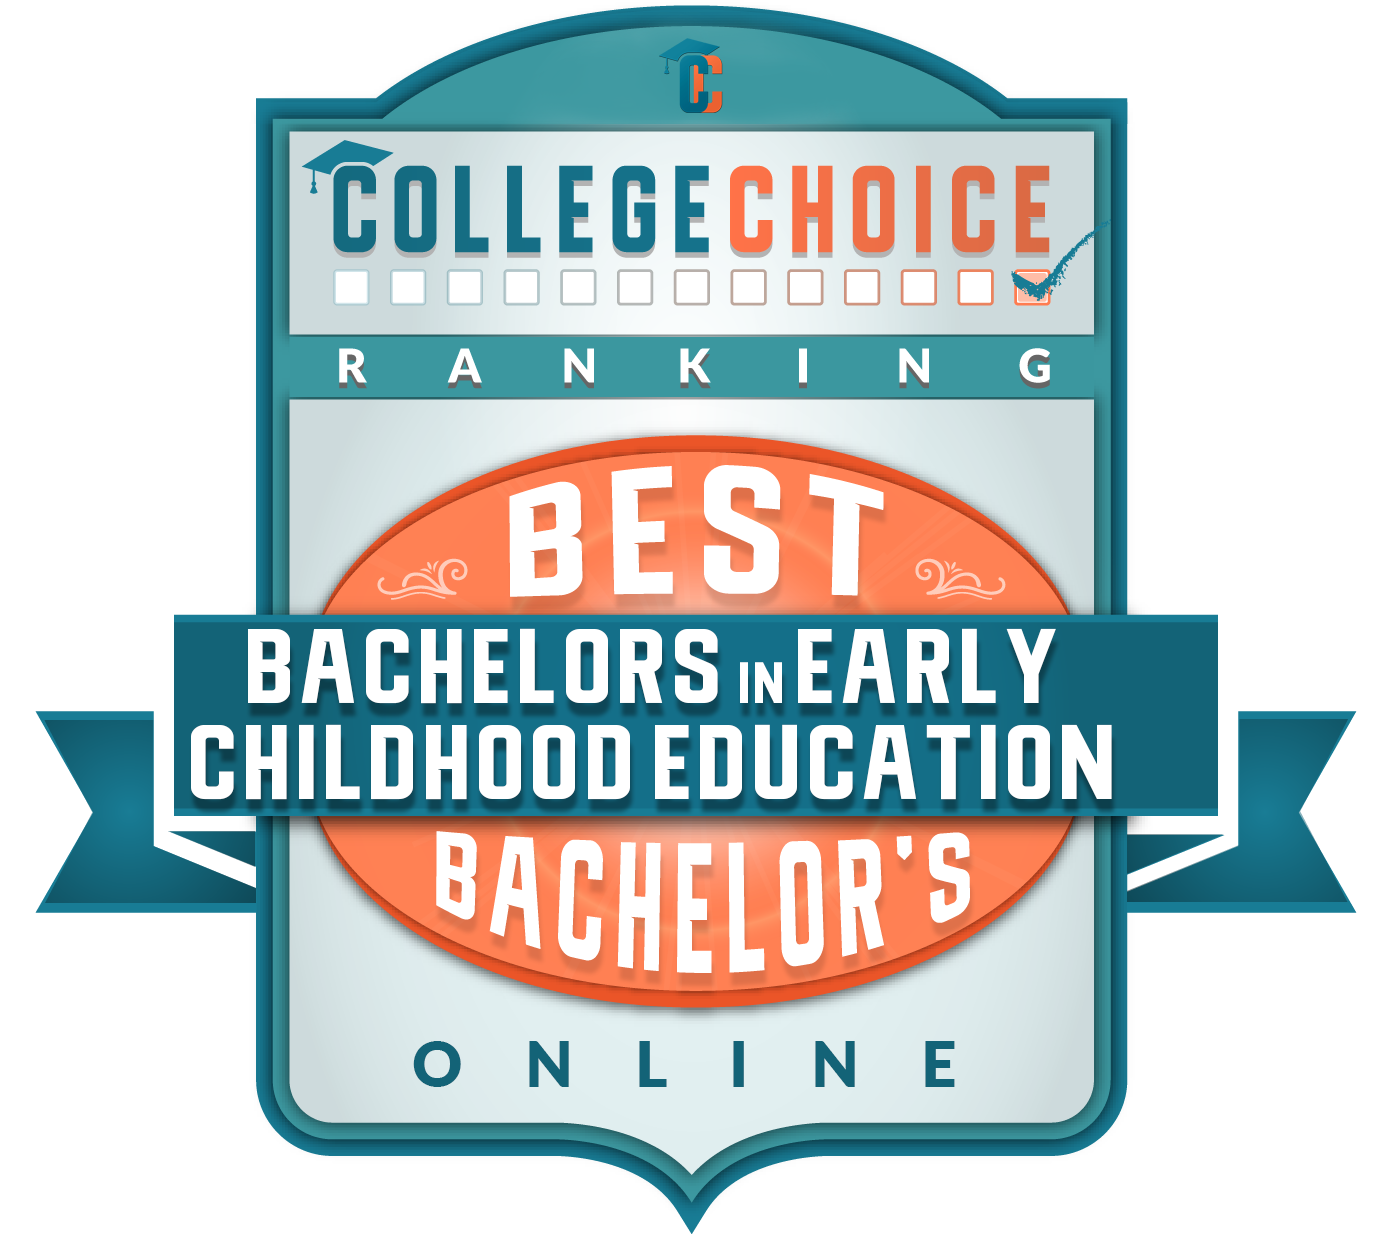 Early Childhood Education Bachelors Degree College Of Human